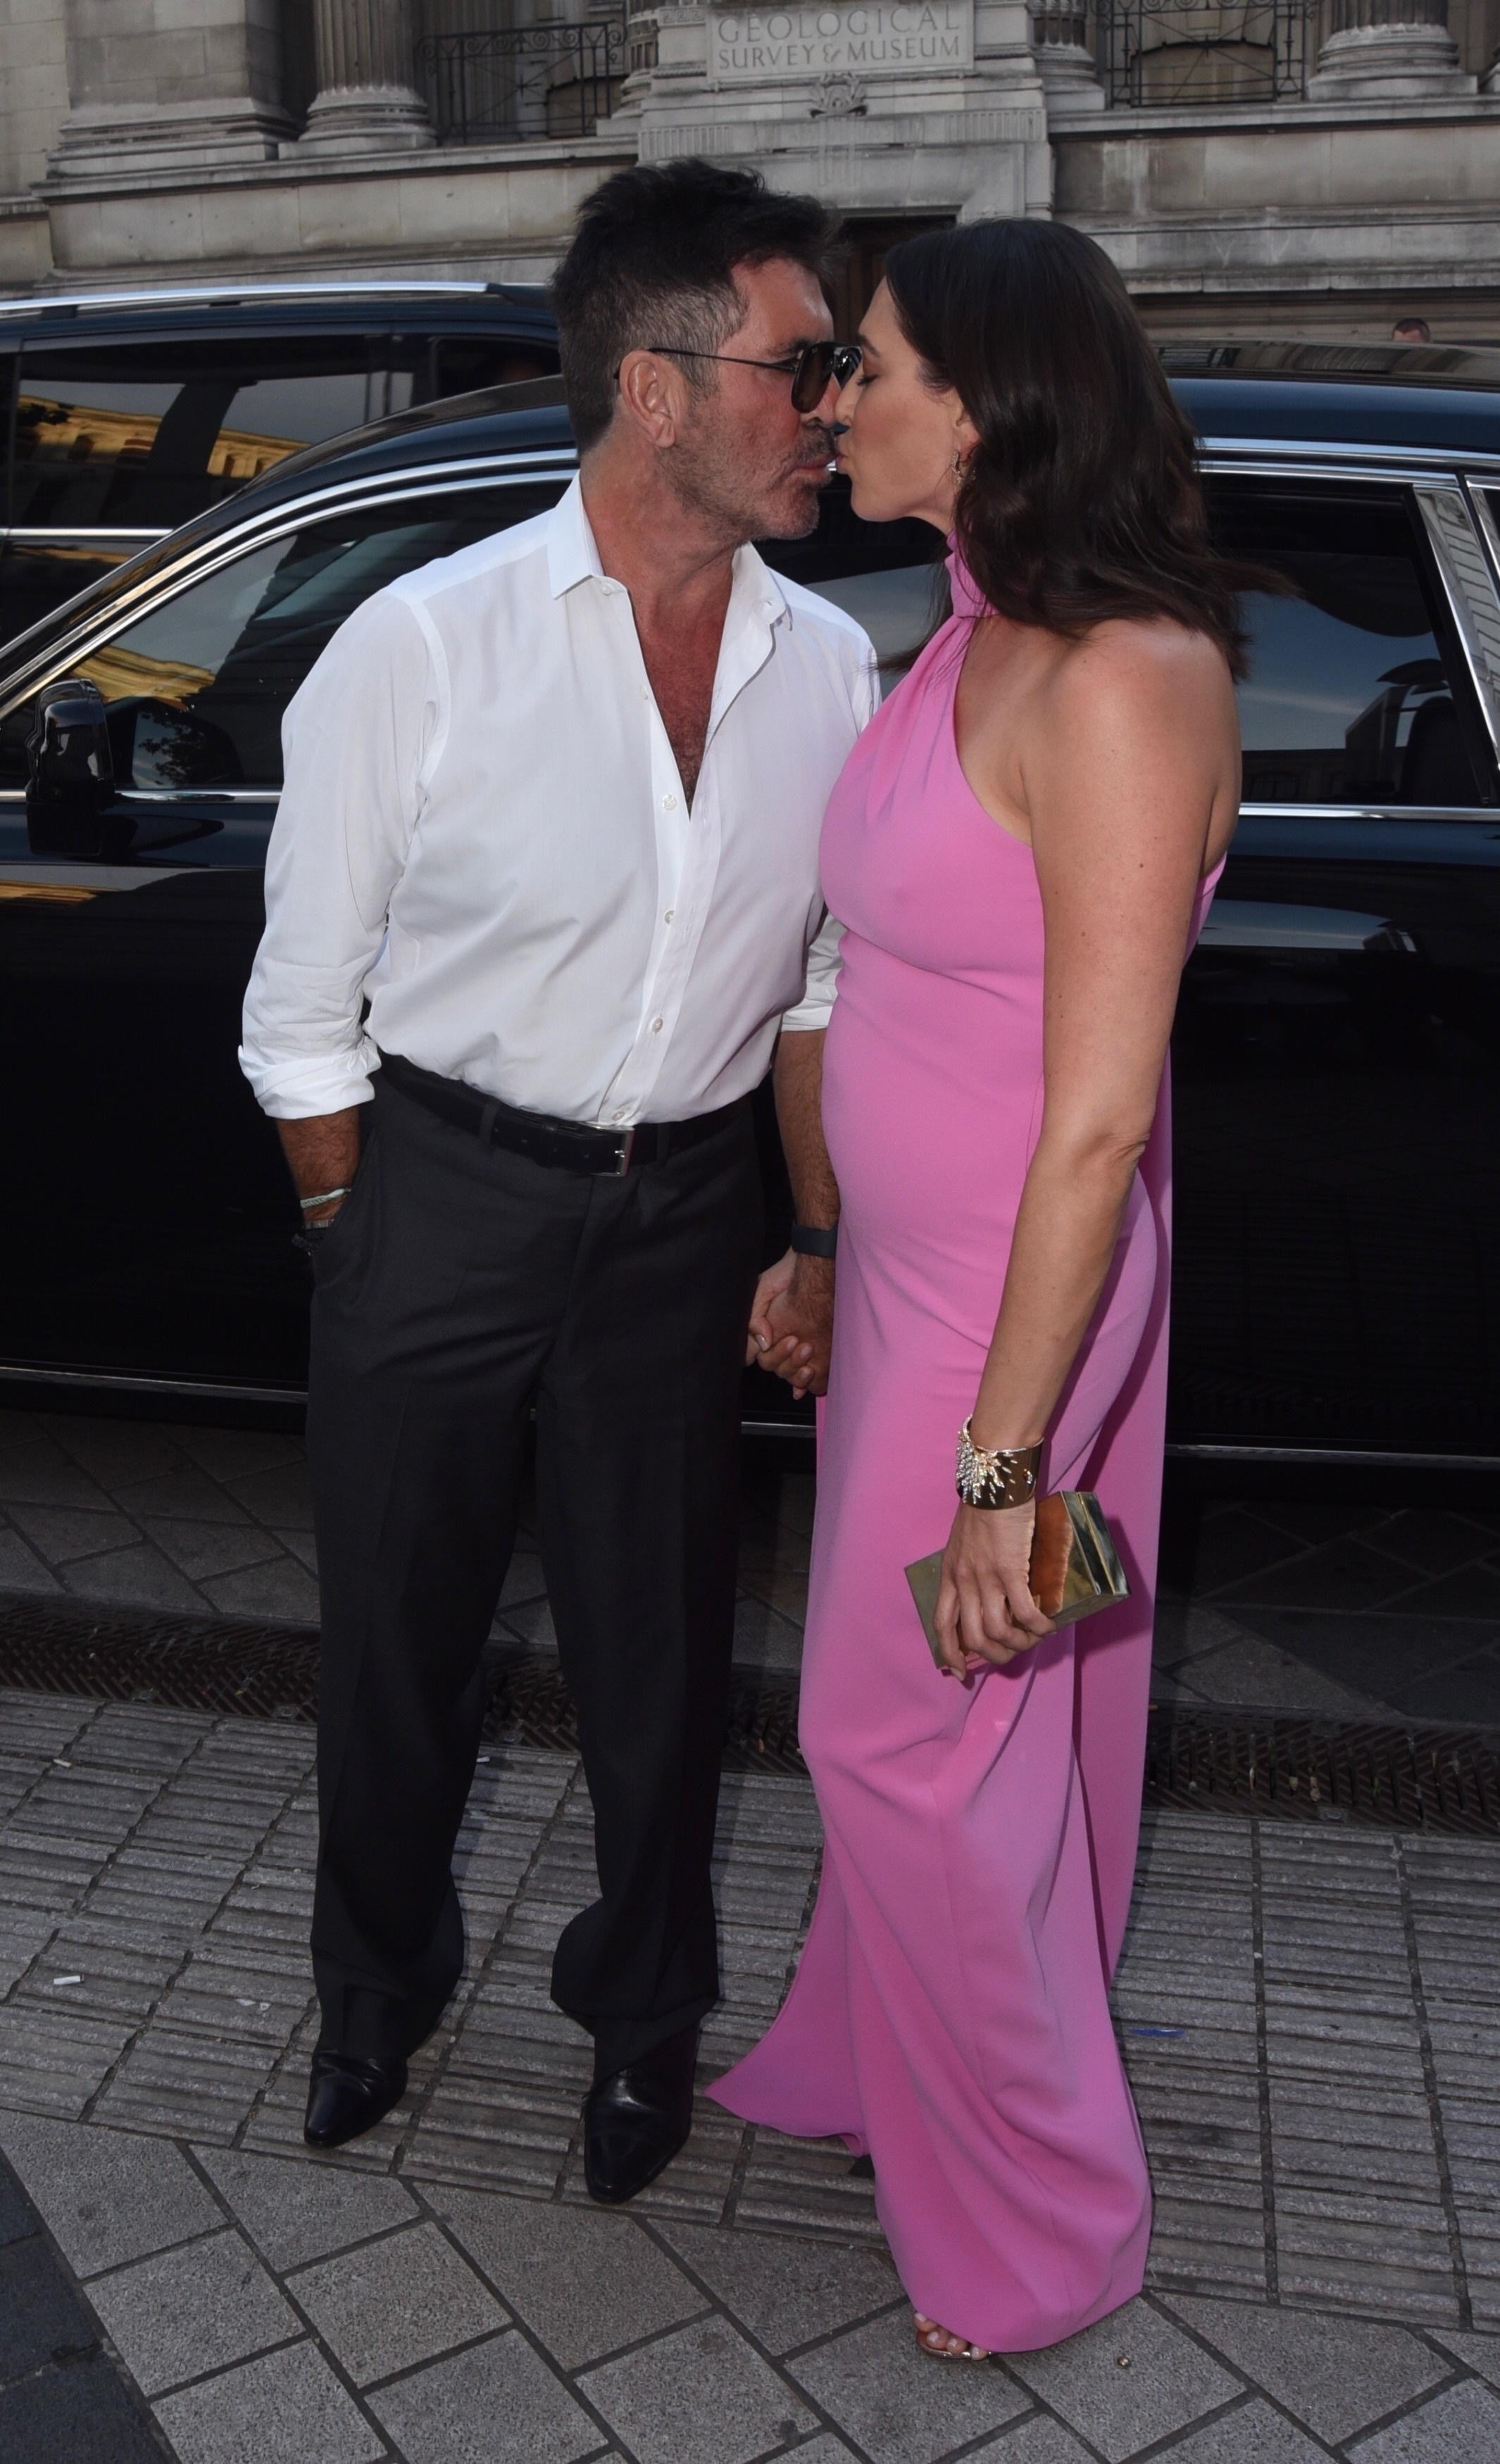 Simon Cowell and  Lauren Silverman were spotted sharing a kiss while arriving at a party in London, England on July 4, 2019.